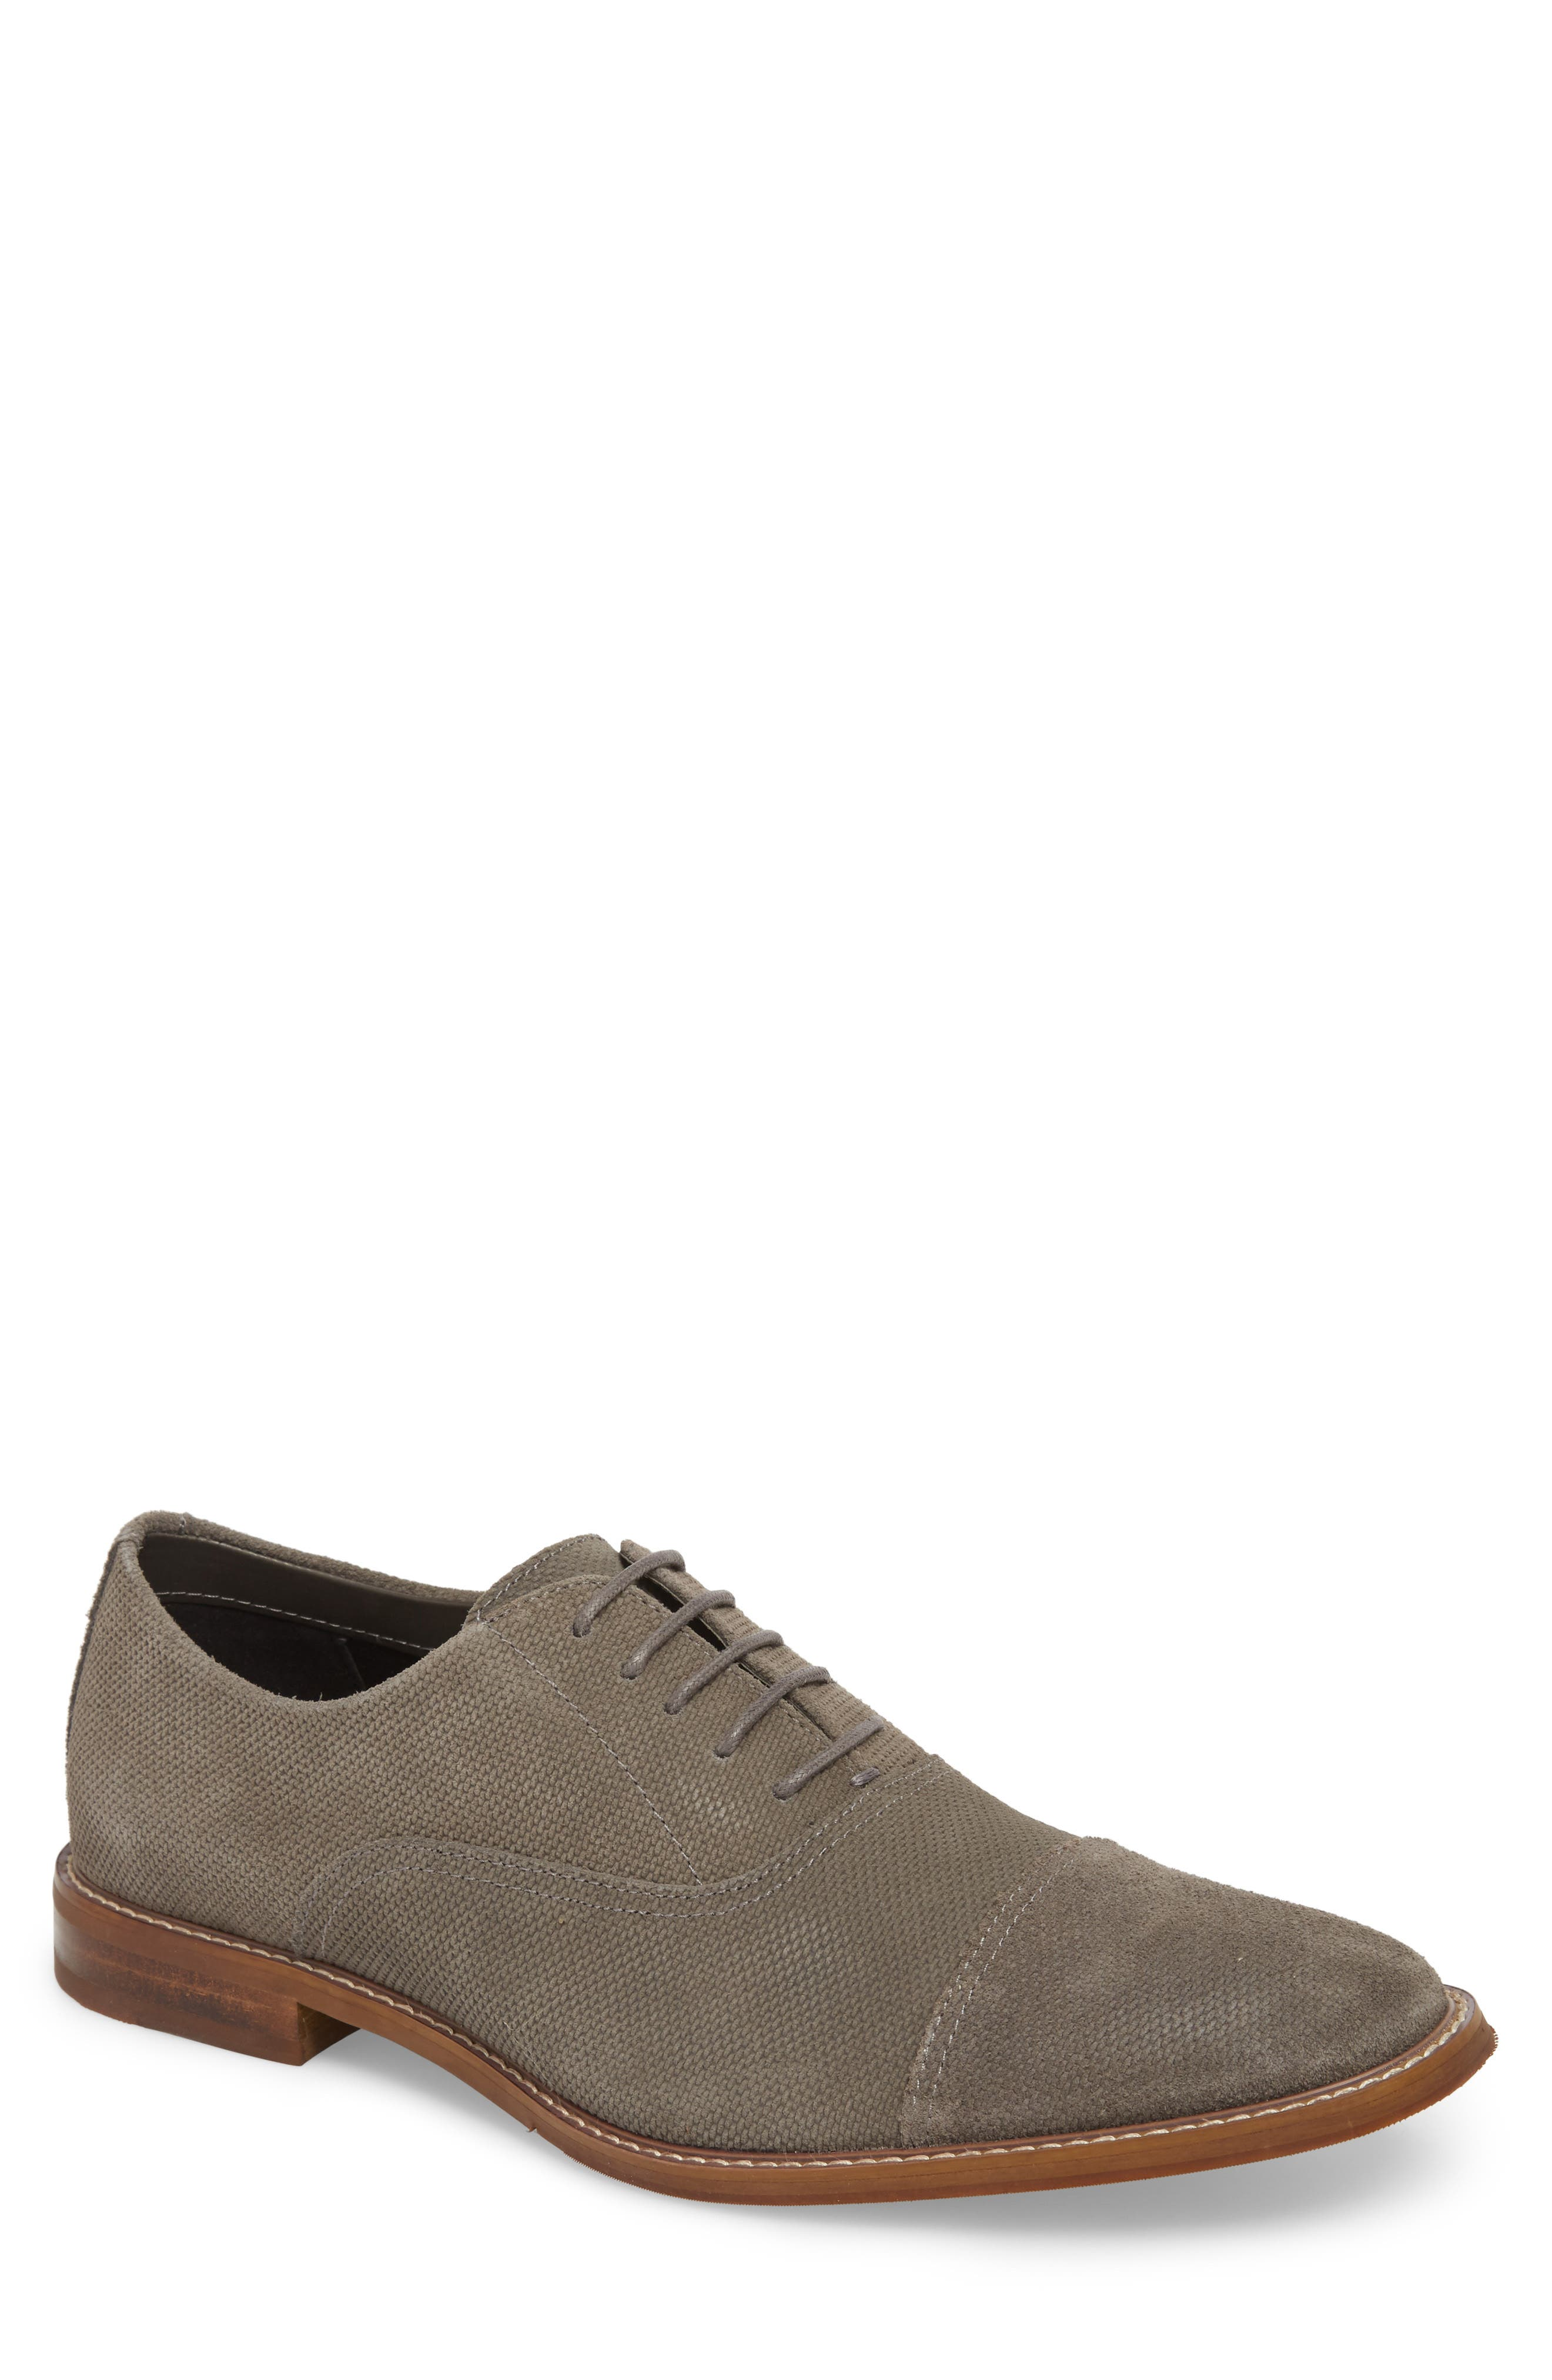 Ravenna Cap Toe Oxford,                         Main,                         color, Taupe Suede